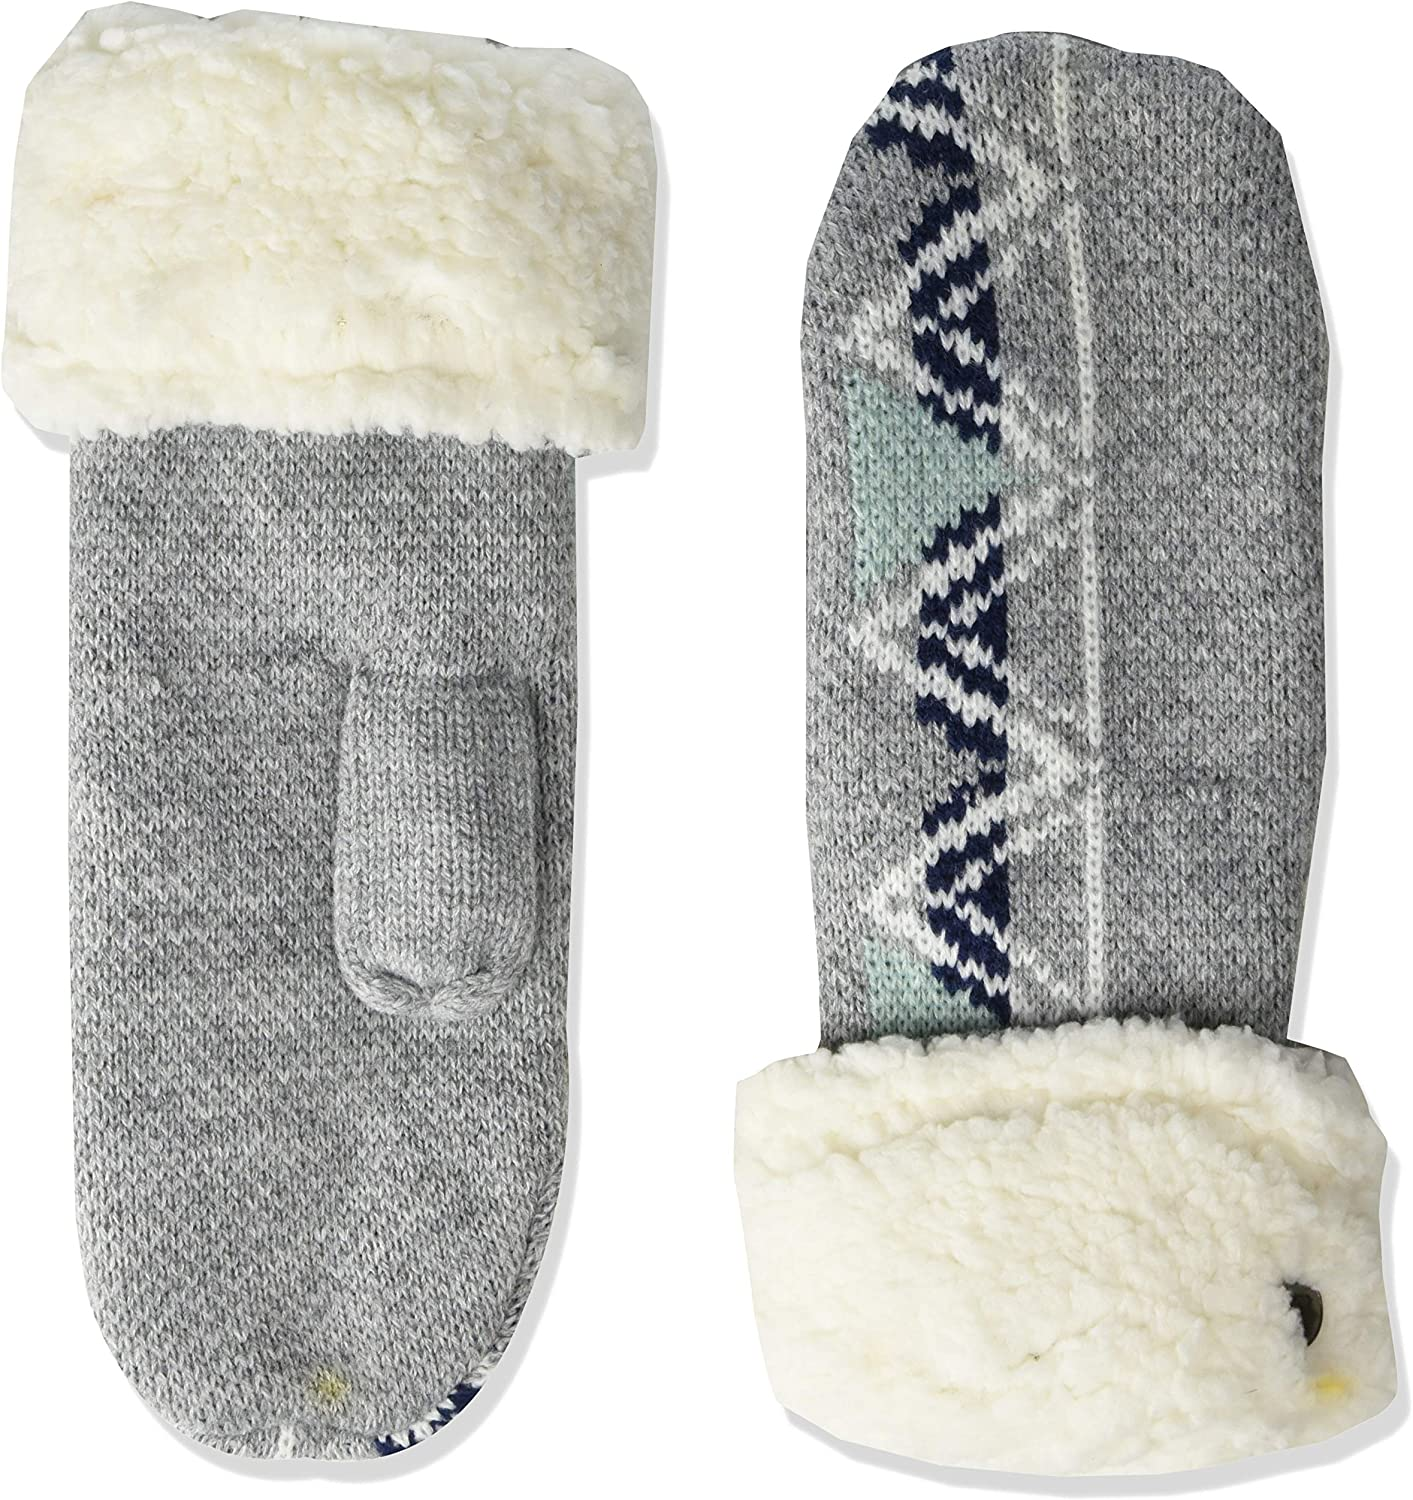 Roxy Our shop most popular Women's Lizzie Mittens ! Super beauty product restock quality top!